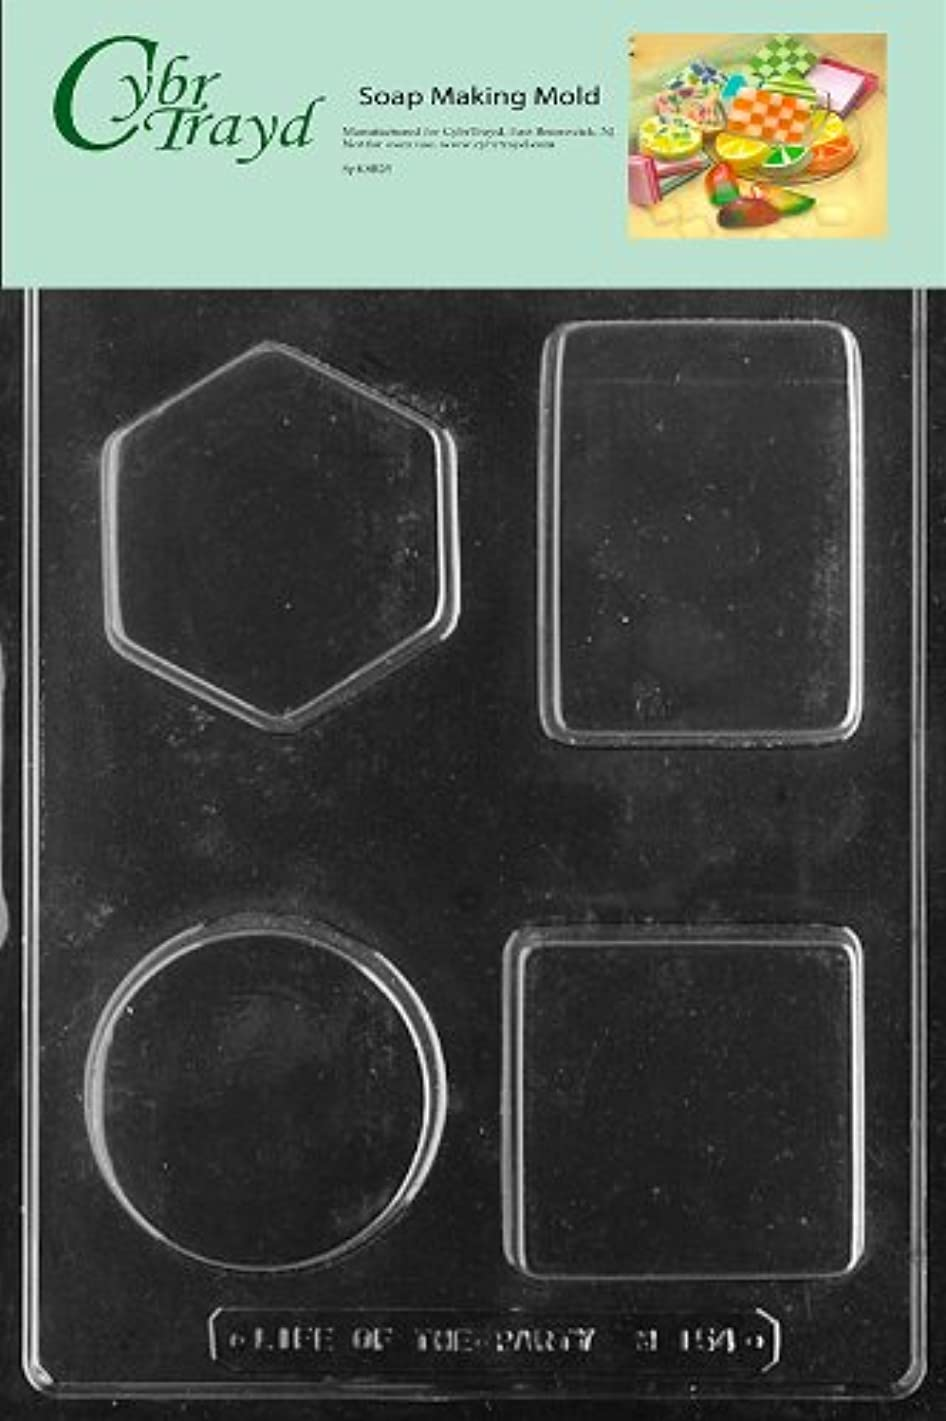 Cybrtrayd 4-Shape Soap Bars Soap Mold with Exclusive Cybrtrayd Copyrighted Soap Molding Instructions